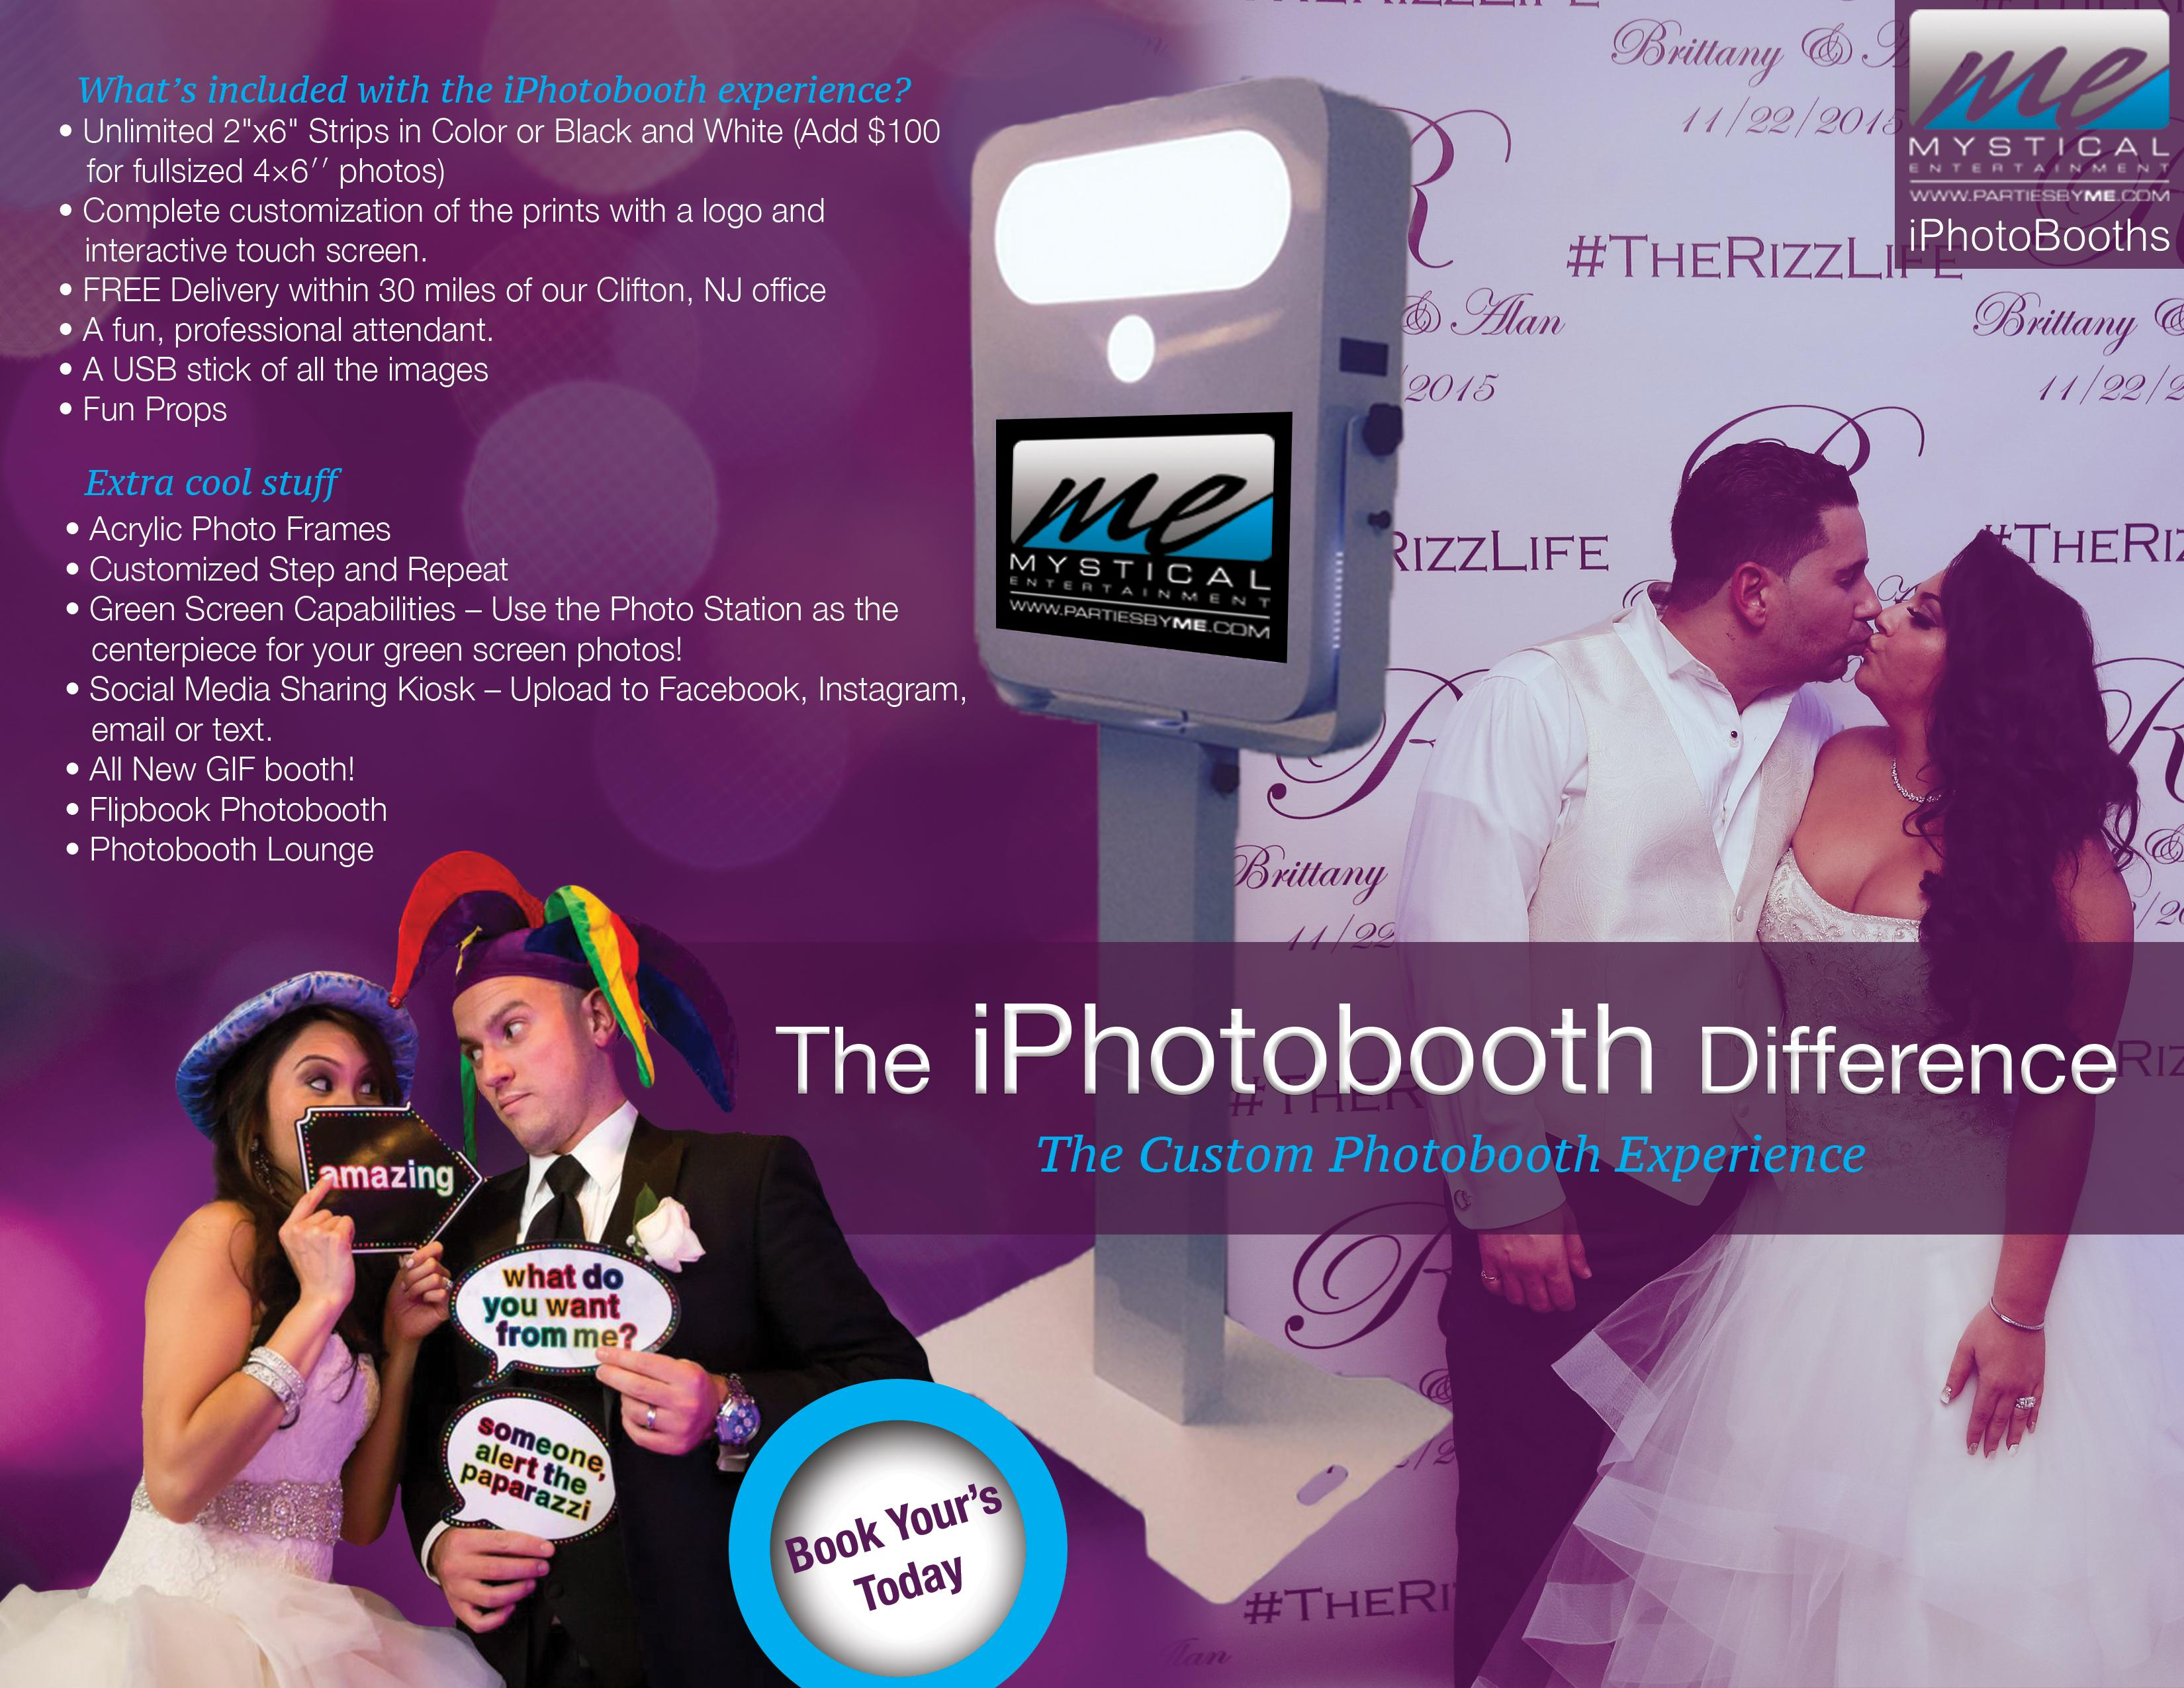 Mystical Entertainment photobooth rentals